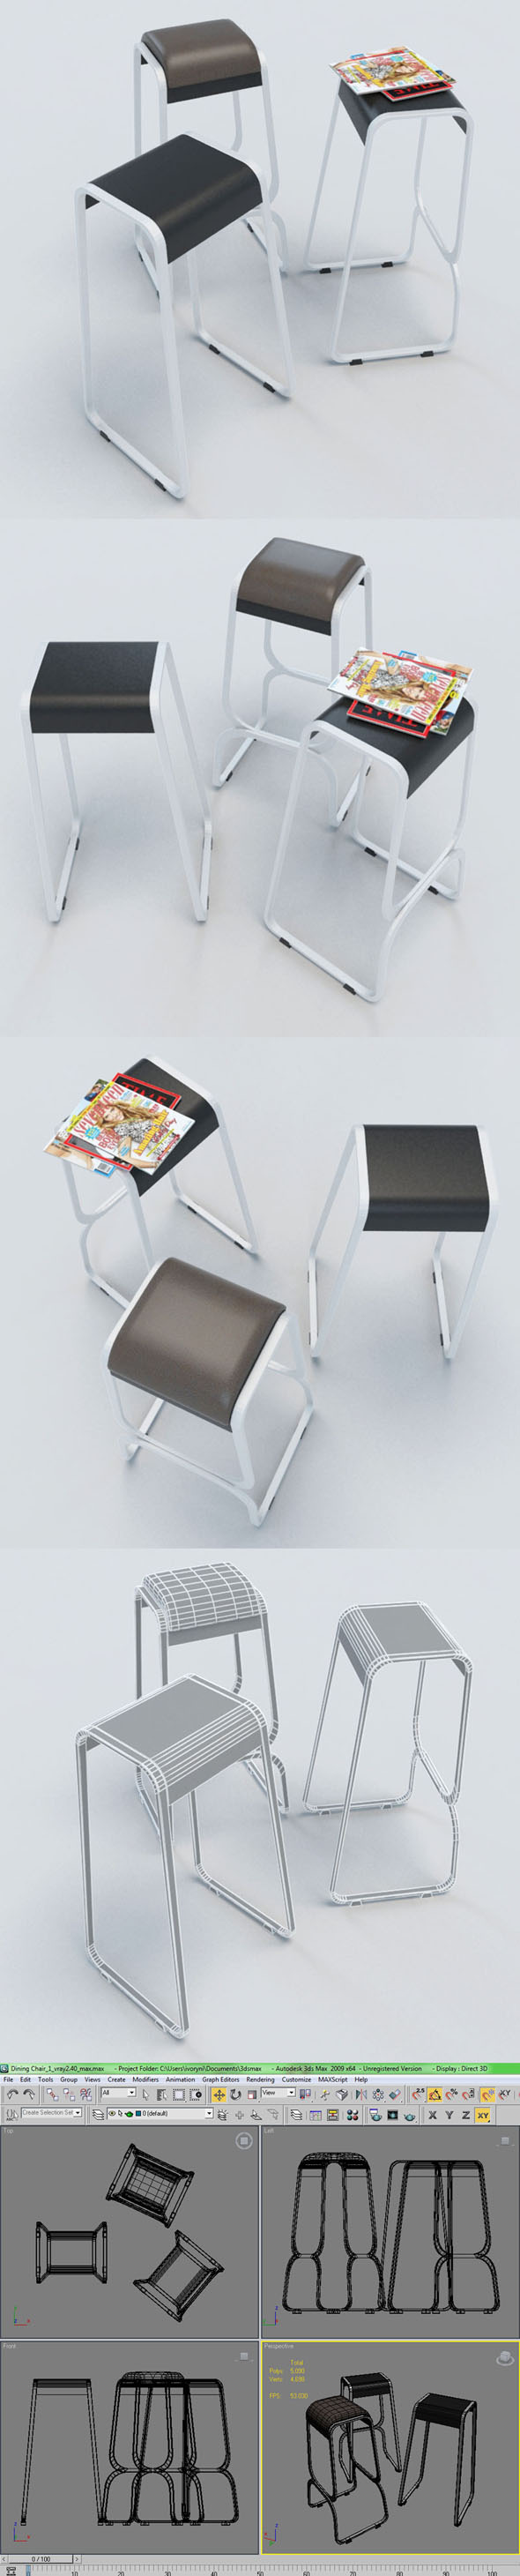 Dining Stool_1 - 3DOcean Item for Sale